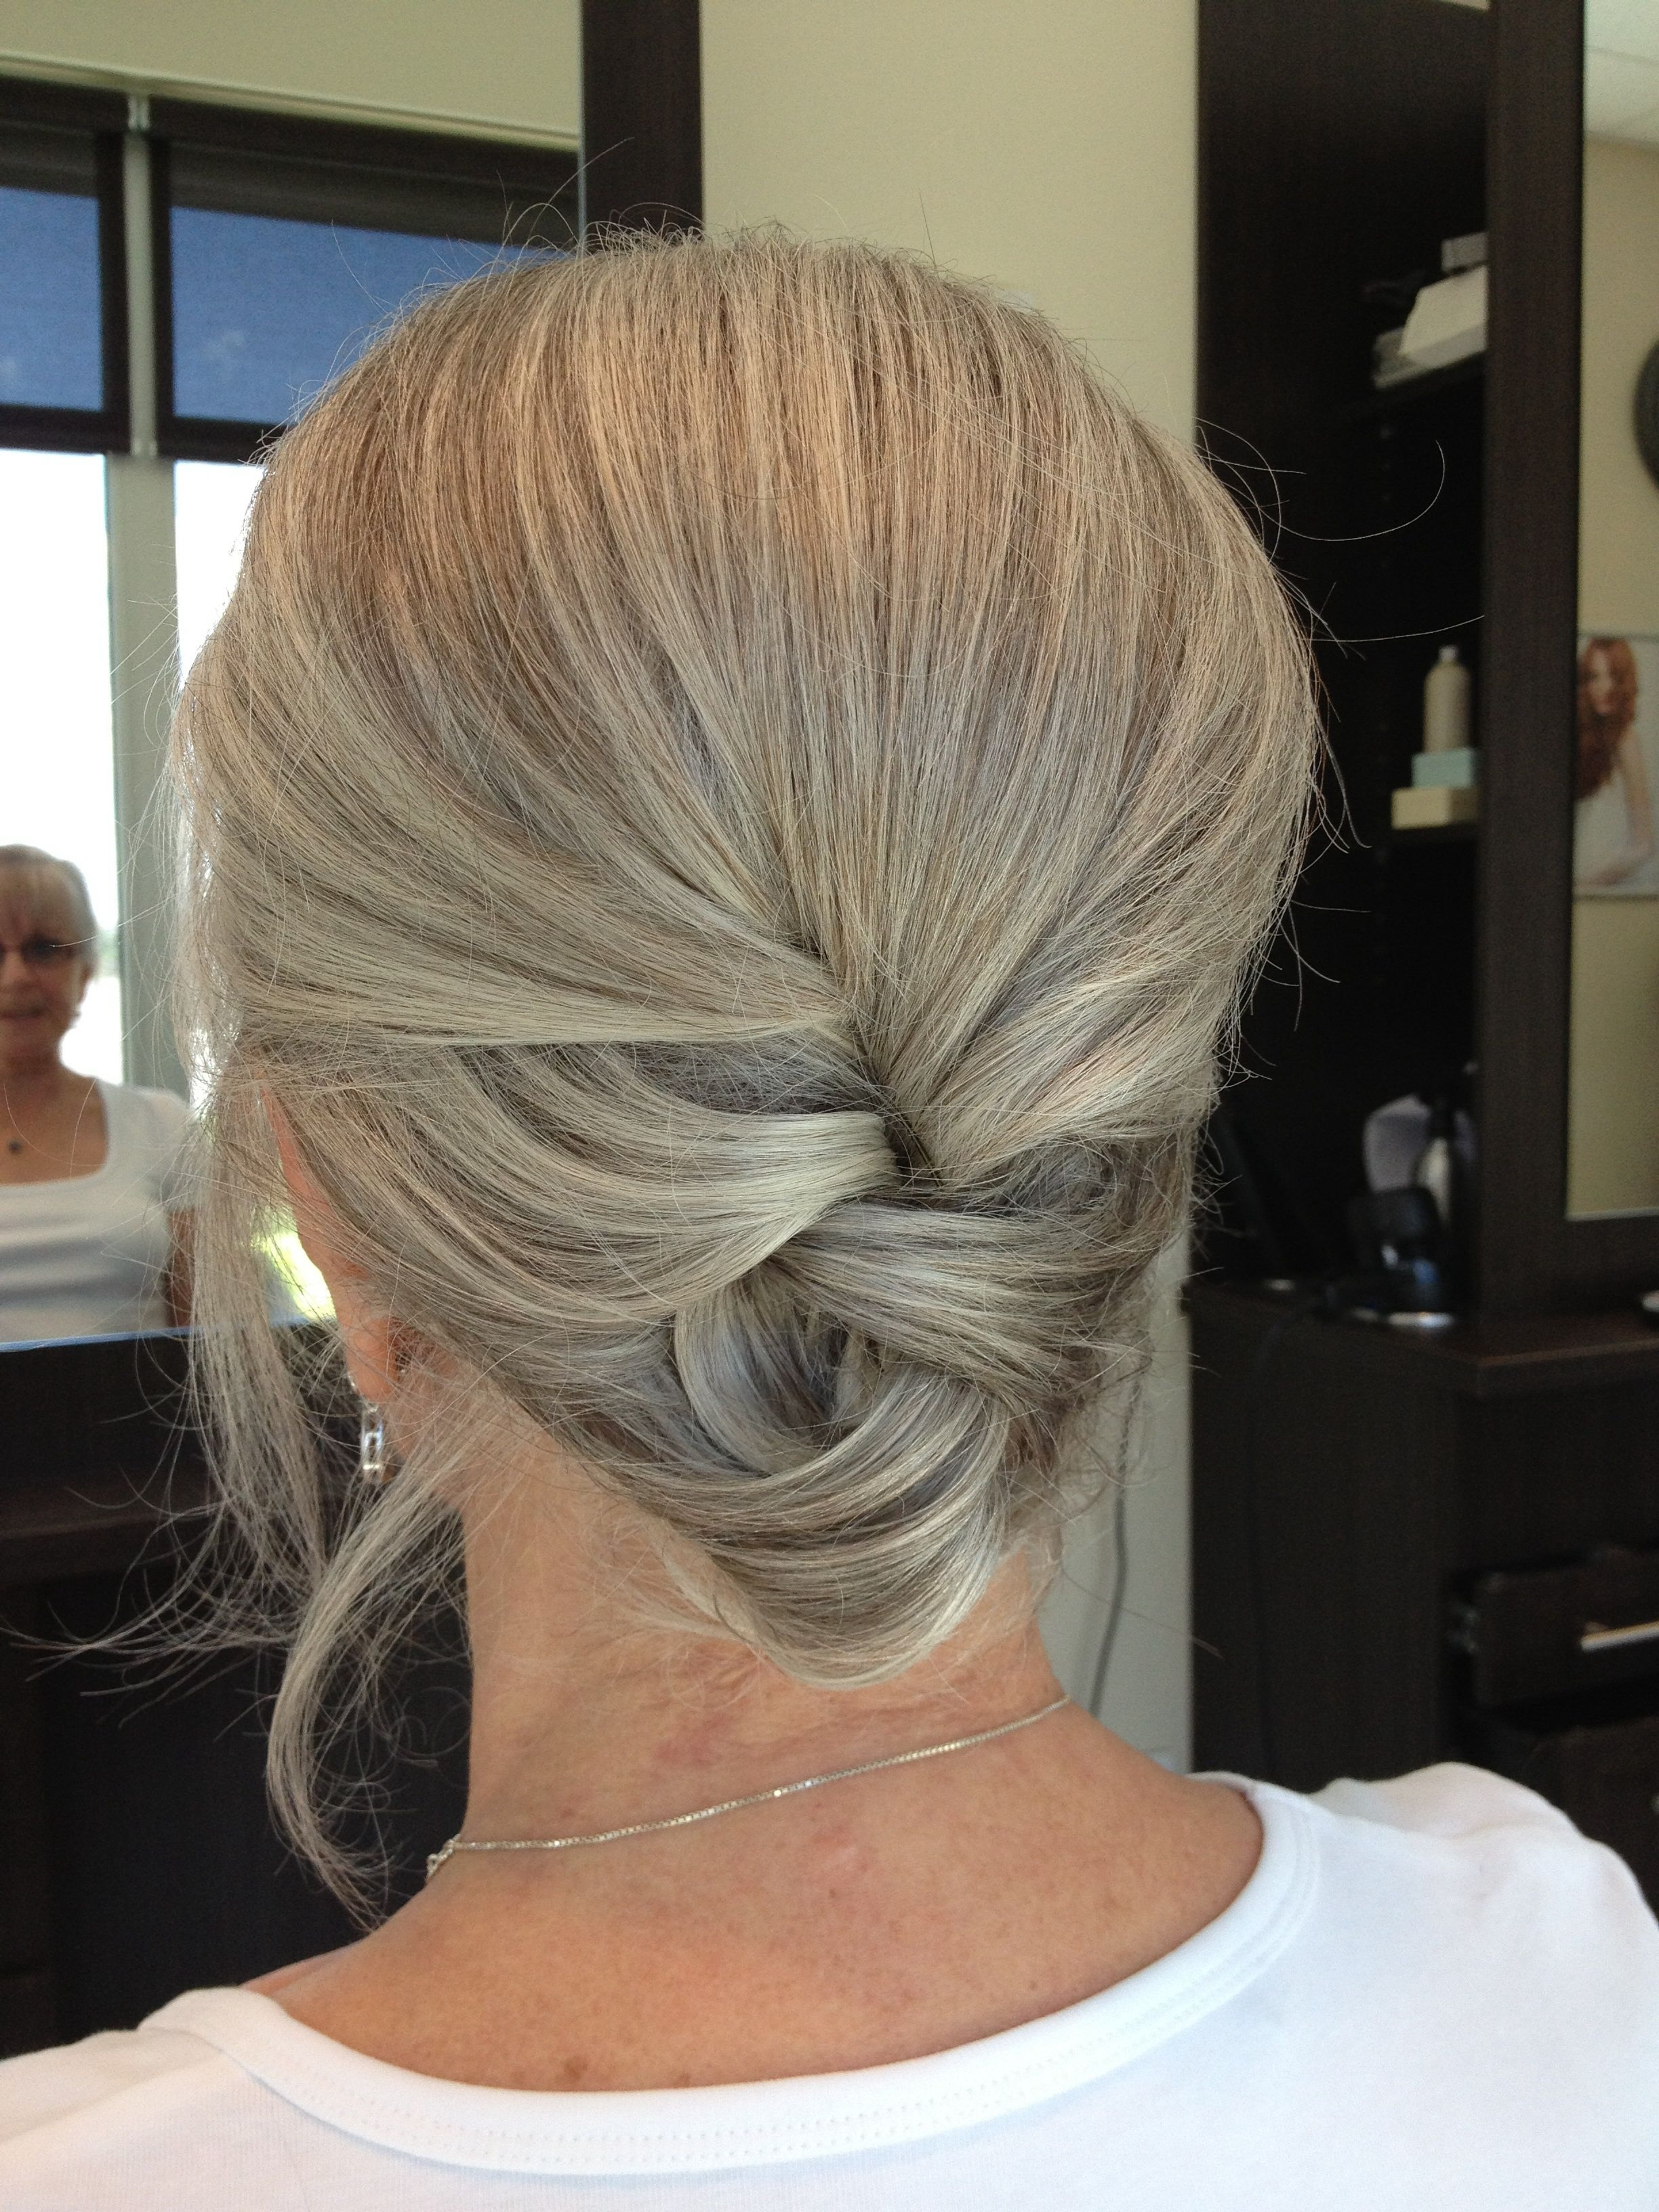 Updo For 50 And Over Women | Updo Hairstyles For Women Over 50 In Updo Hairstyles For Older Women (Gallery 7 of 15)